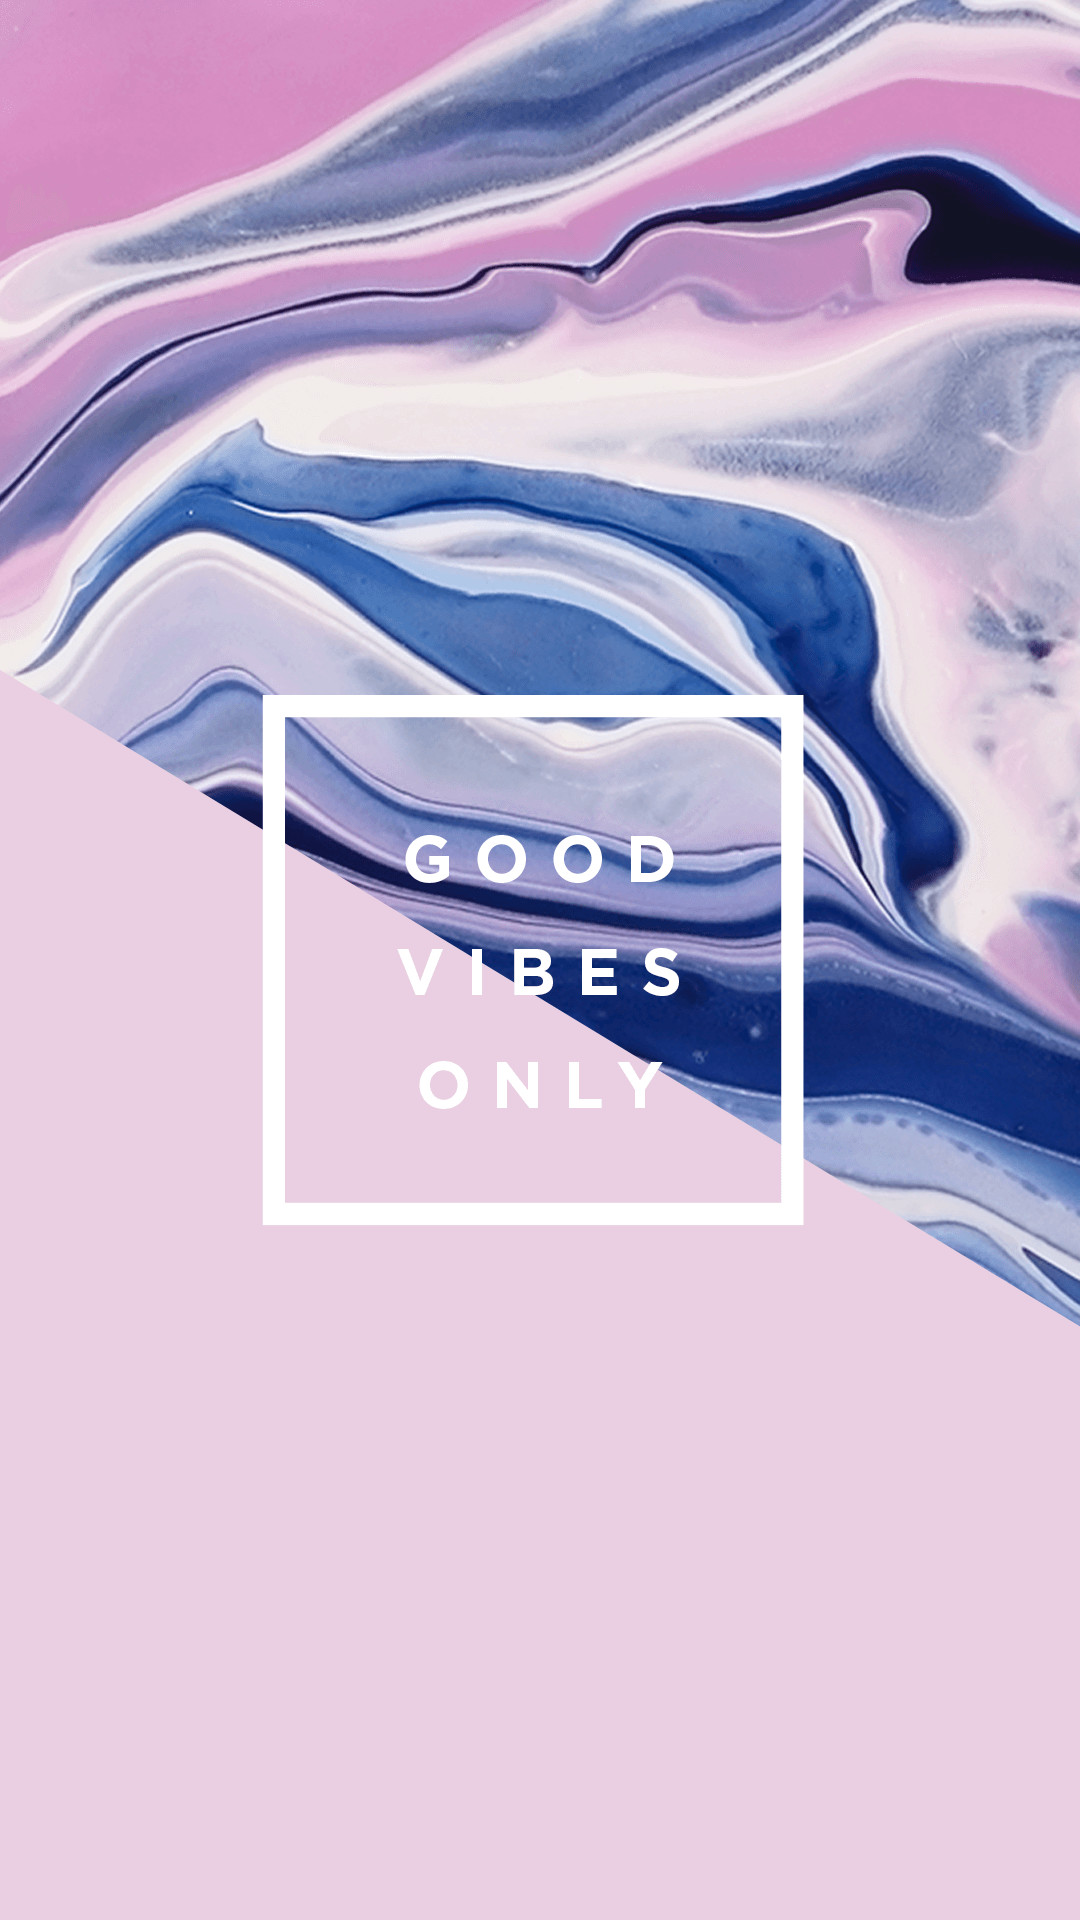 Good Vibes ly Wallpapers ·â'